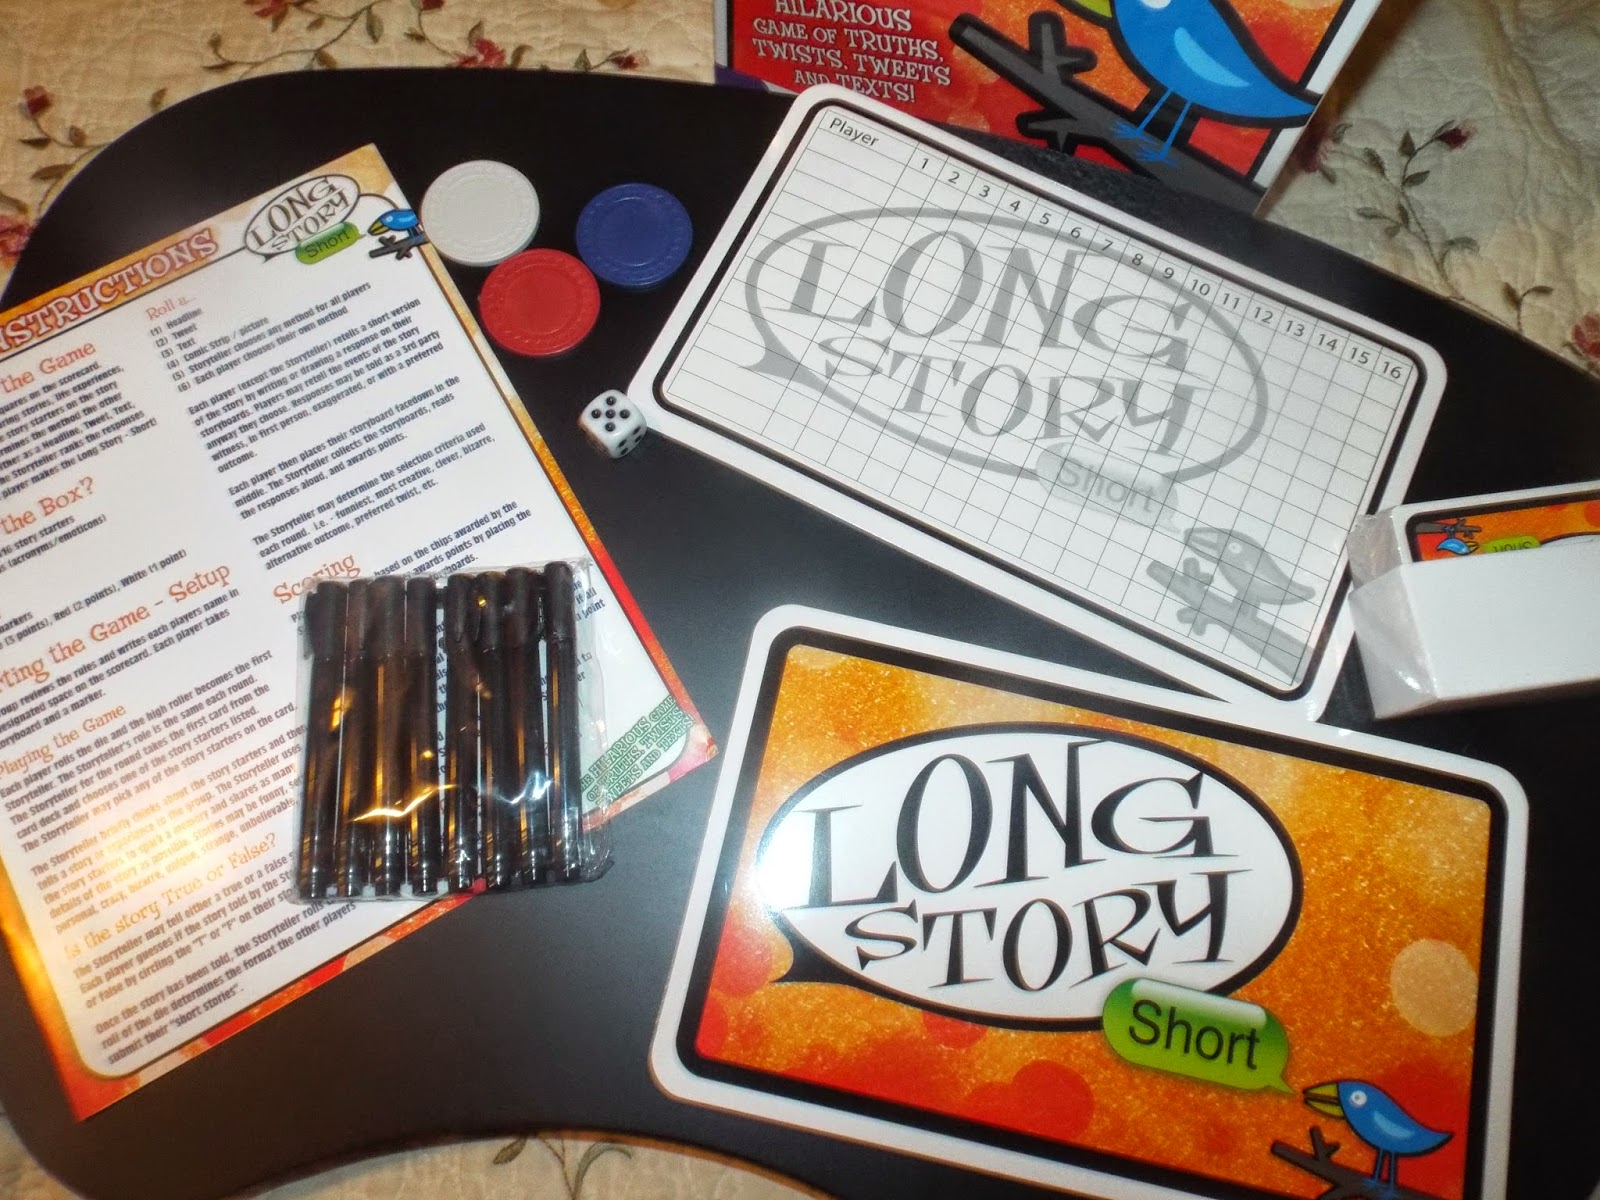 Long Story Short: A game from the folks at The Game Chef